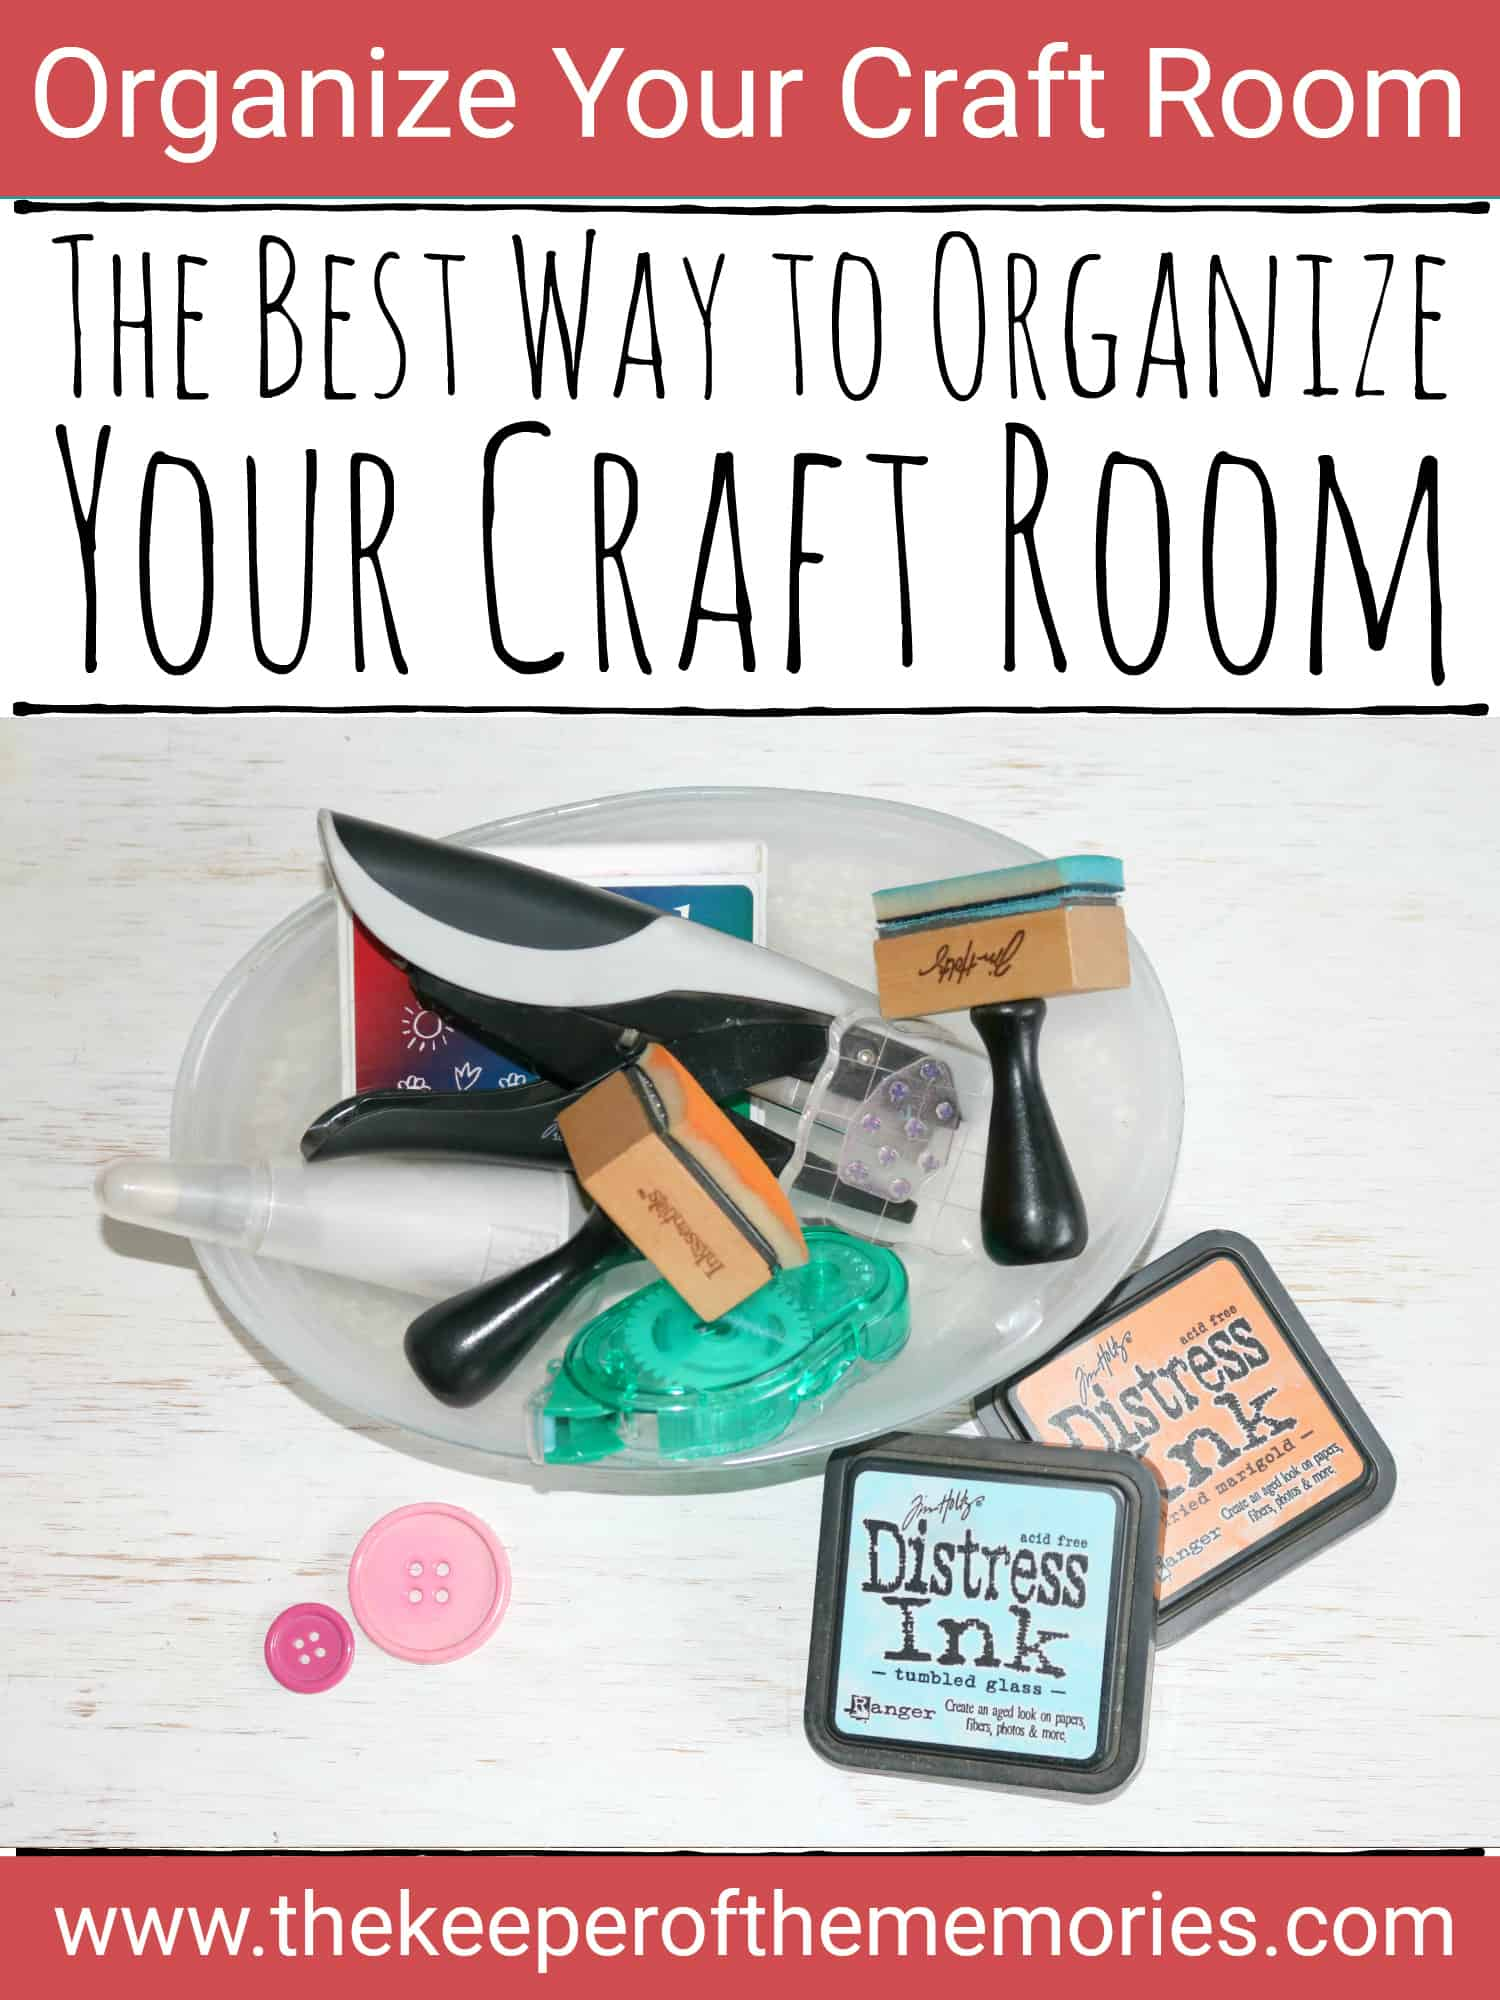 The Best Way to Organize Your Craft Room